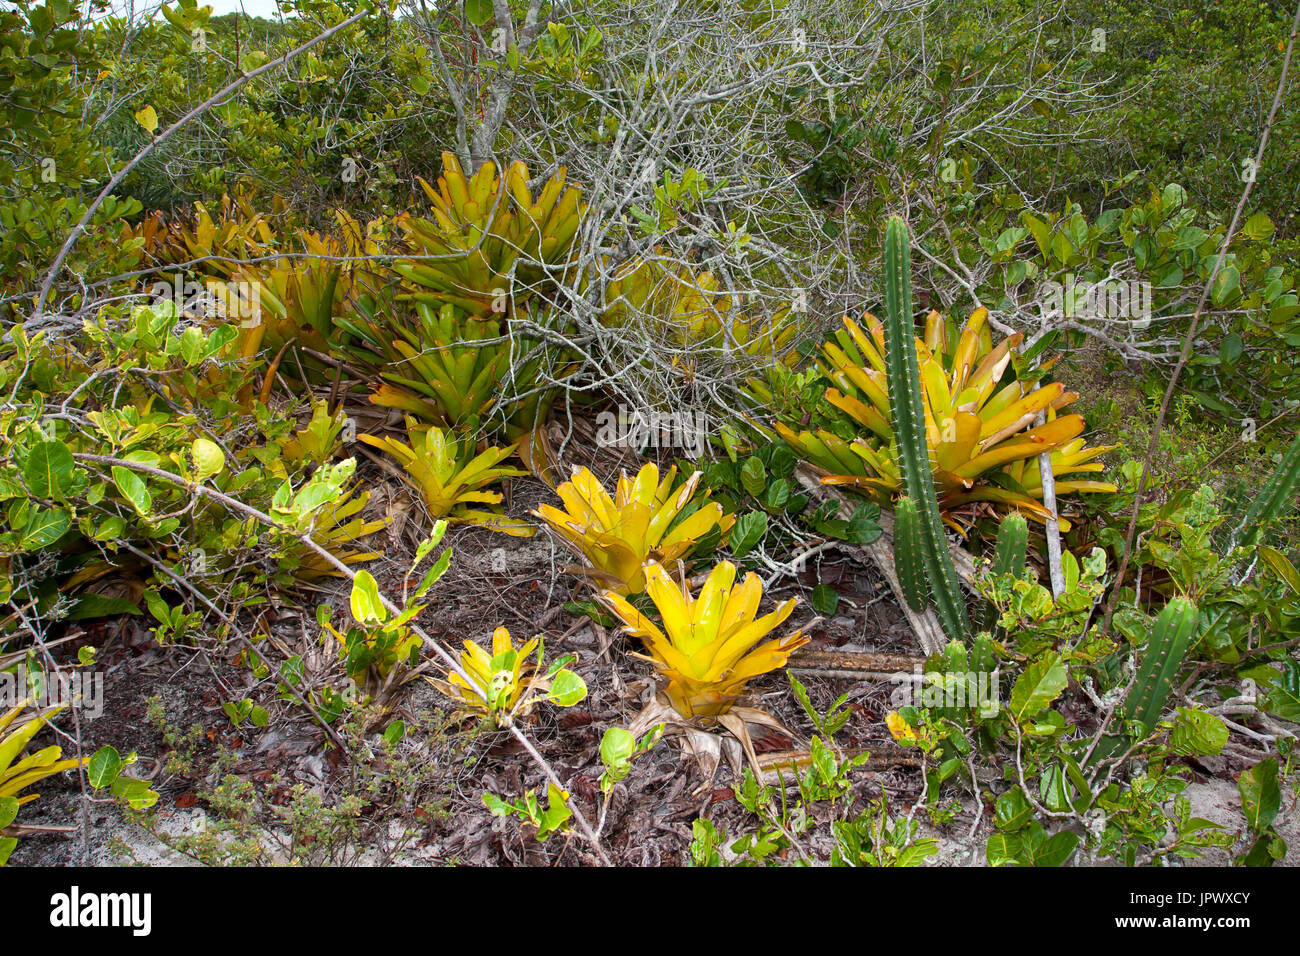 Vegetation Restinga - Bahia Brazil Monte Pascoal Stock Photo